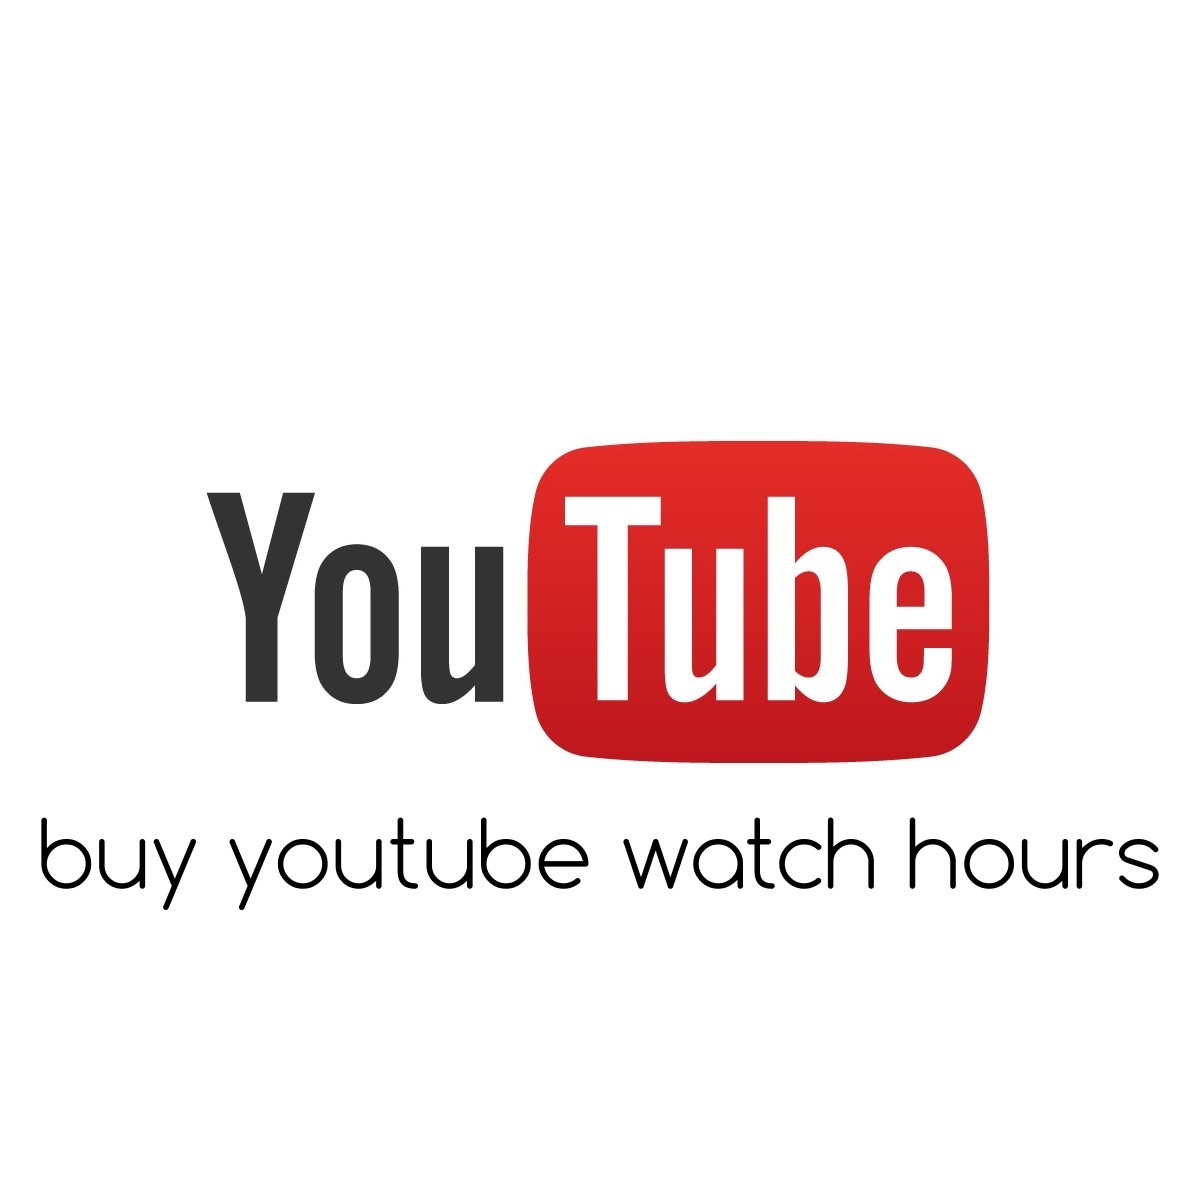 buy youtube watch hours - SMM STORE